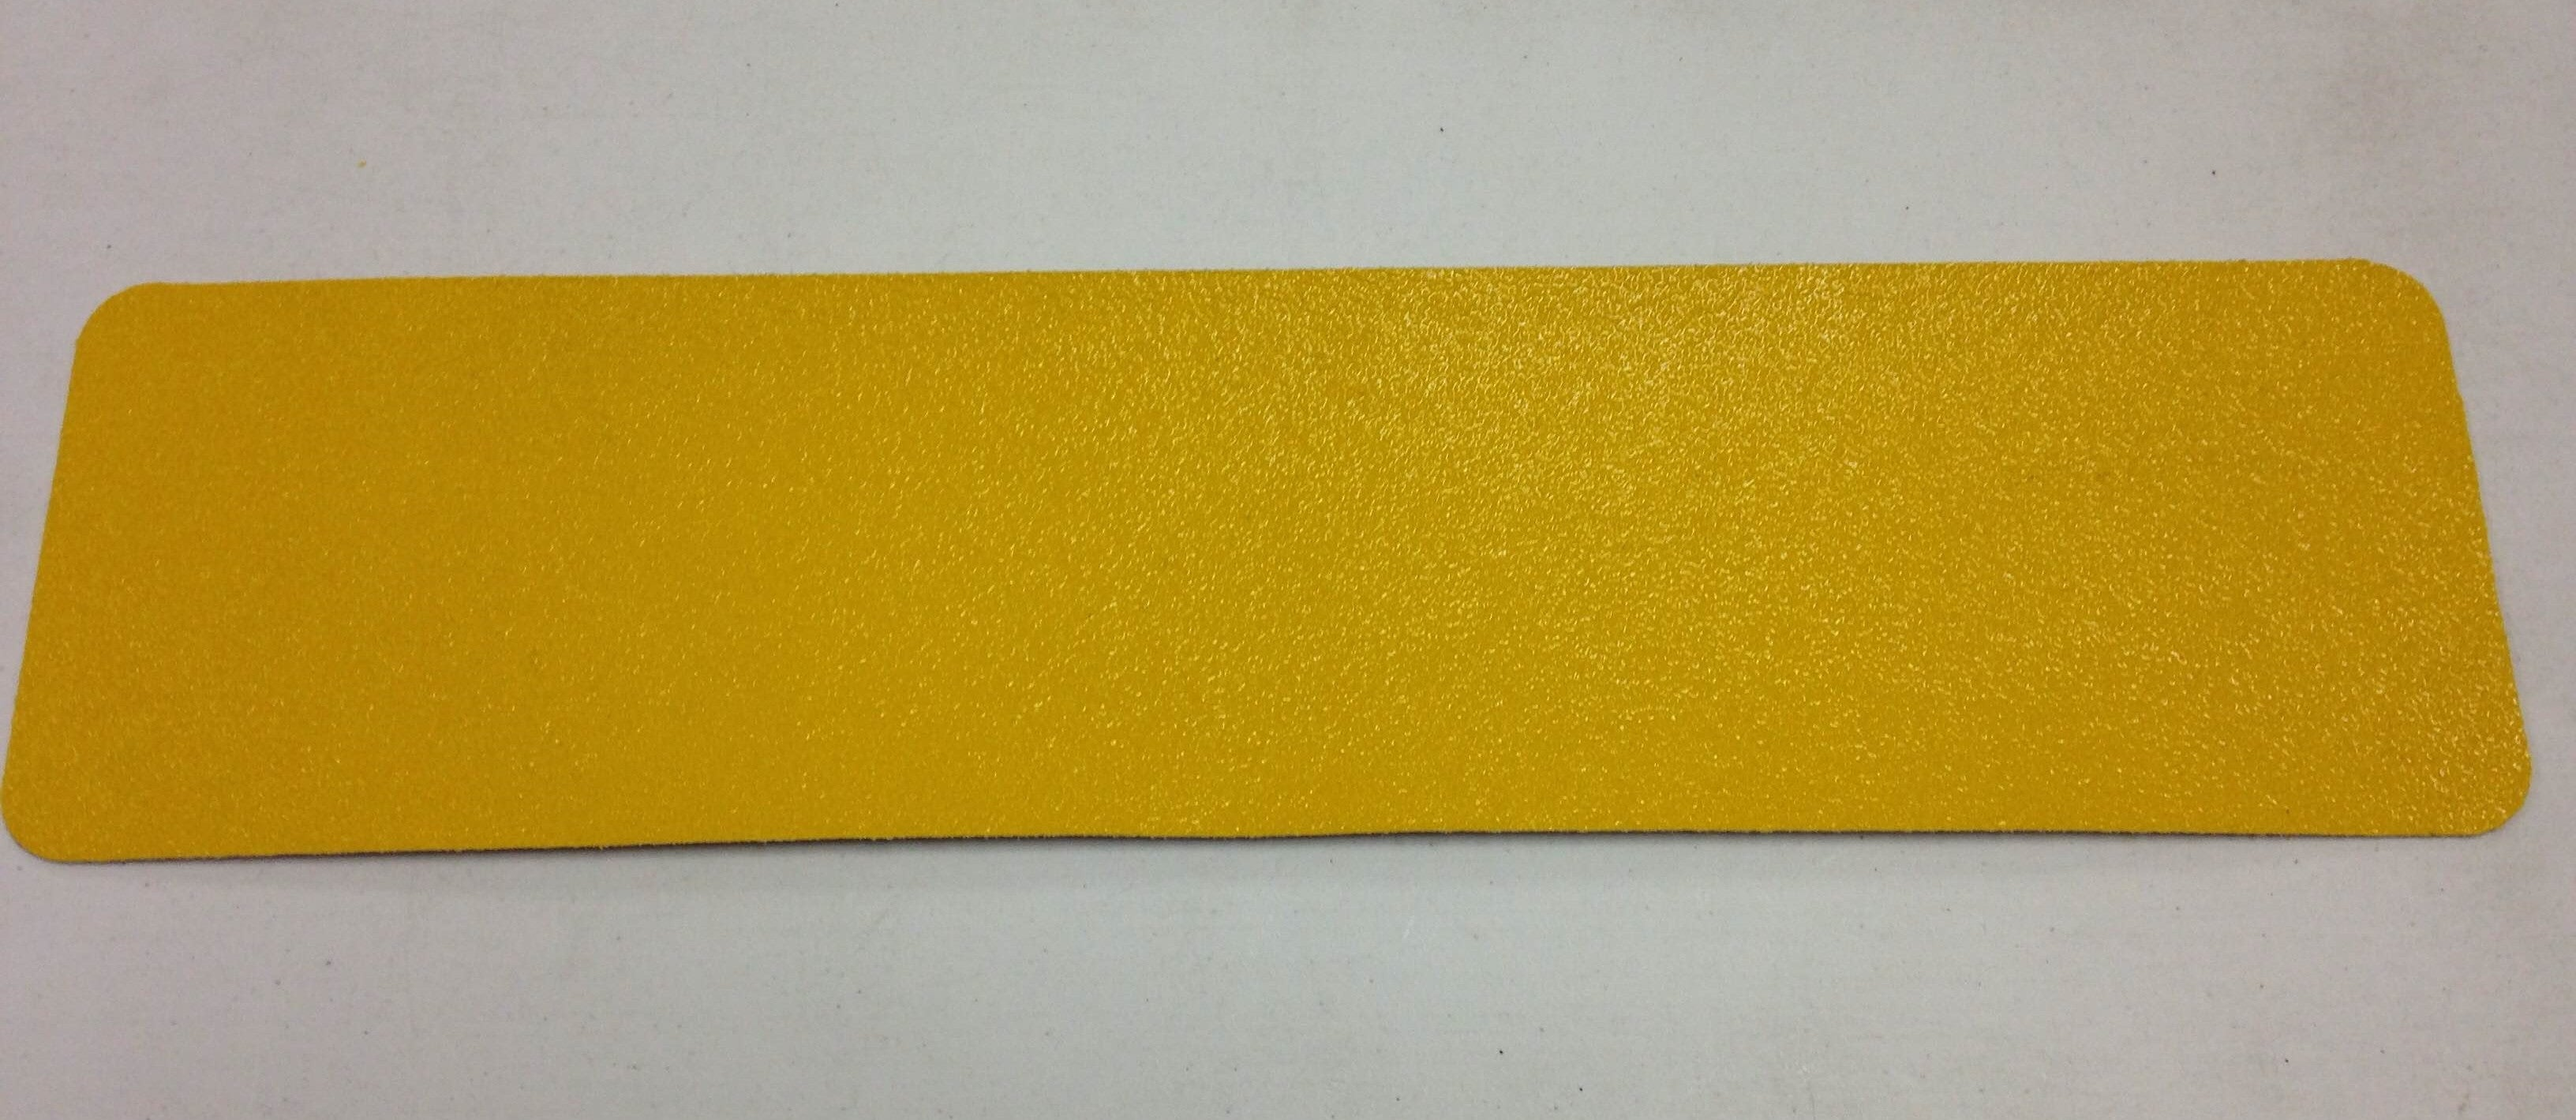 "3"" X 24"" Tread YELLOW Extreme Adhesive Medium Grit Abrasive Tape - Case of 12"